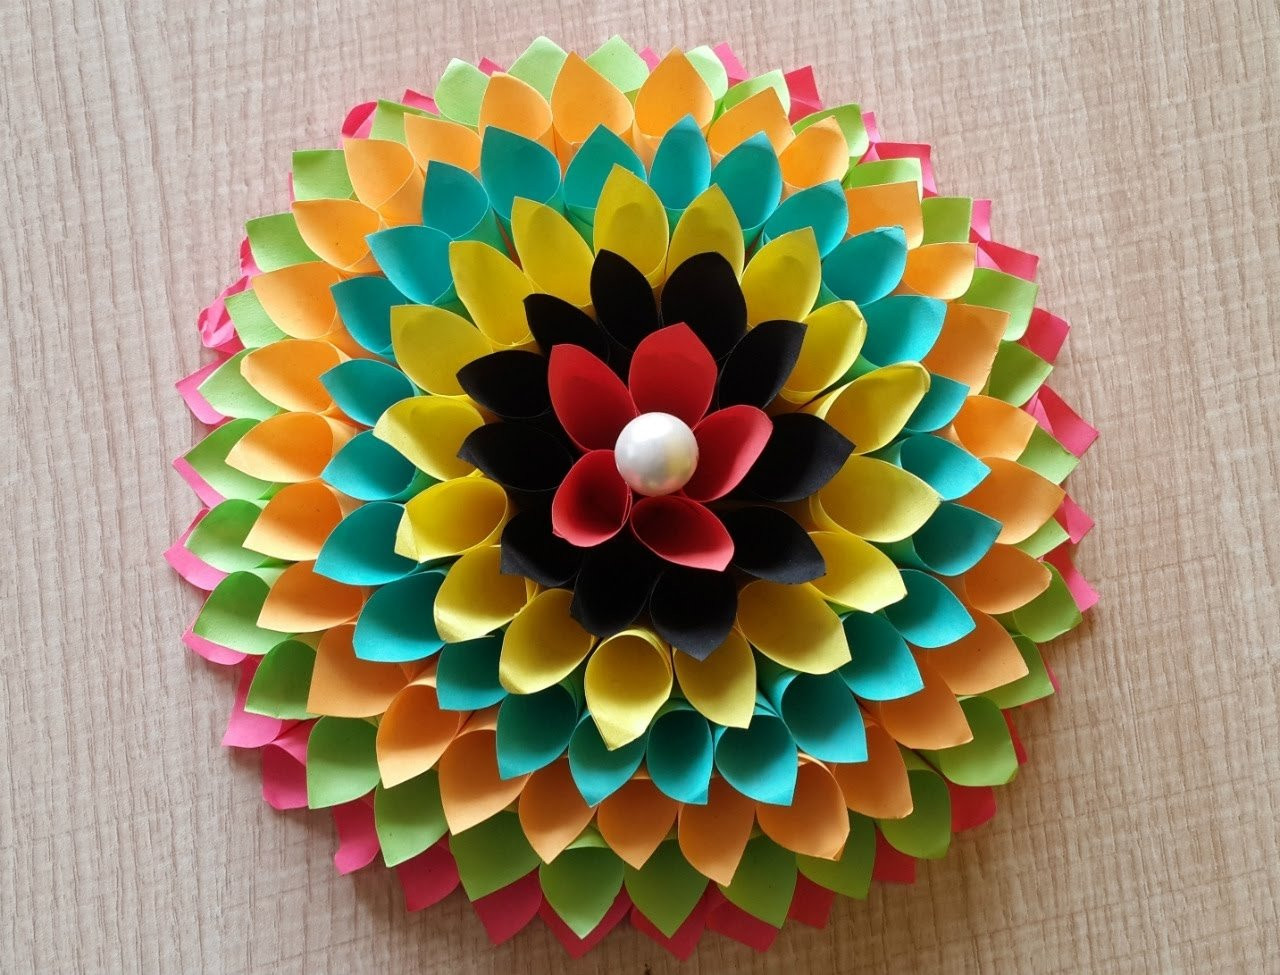 Craft Activities For Adults  10 Attractive Art And Craft Ideas For Adults 2020